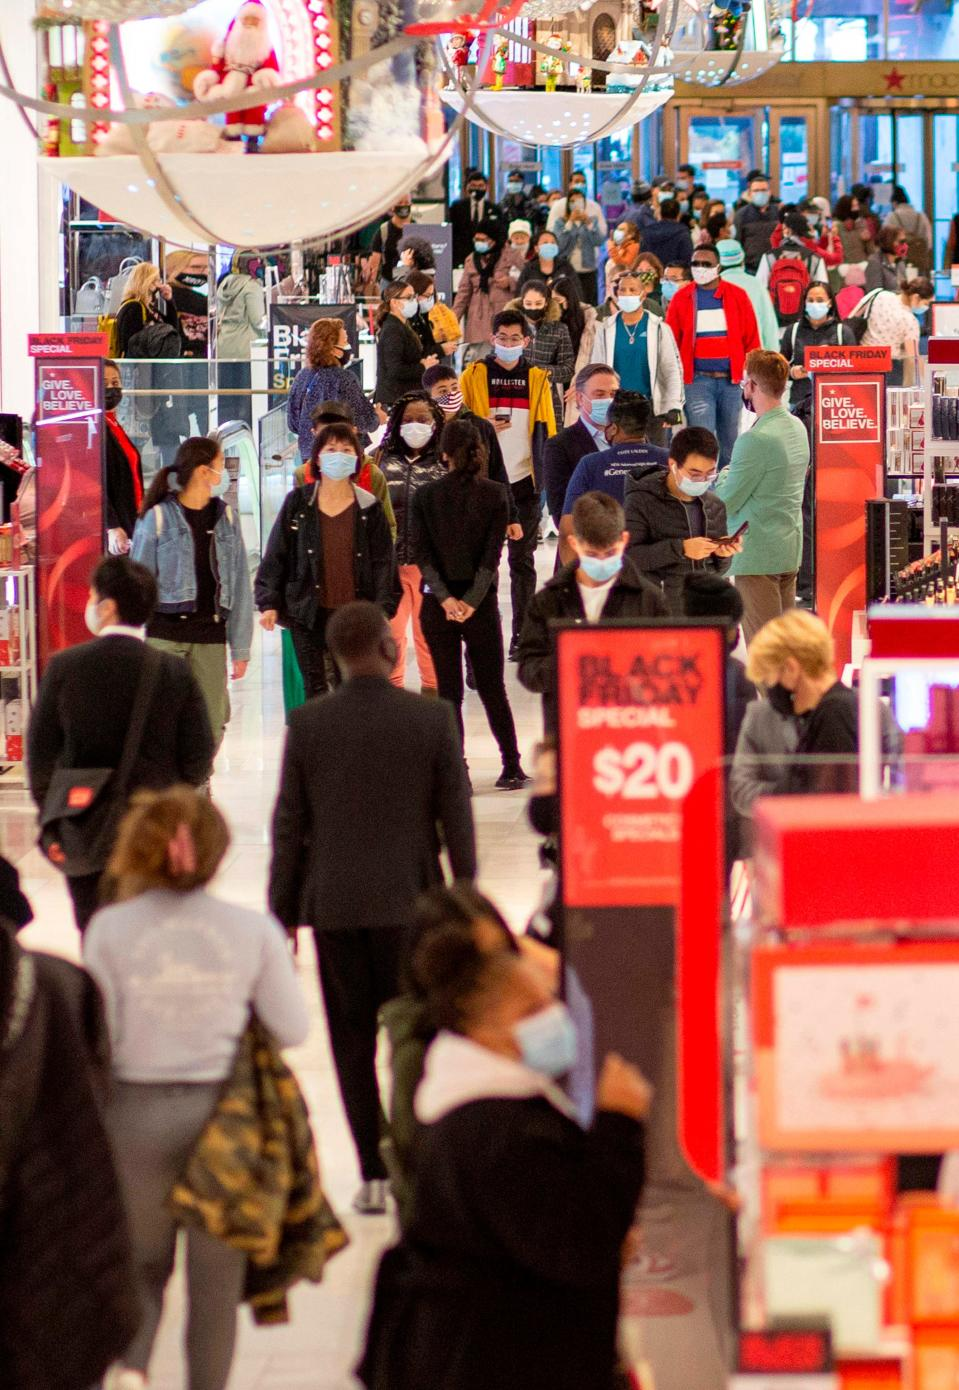 "Customers shop at Macys department store in New York on Black Friday, November 27, 2020. - The coronavirus is clouding ""Black Friday"" much as it has overshadowed 2020 in general, but some leading experts still expect strong overall sales even as shopping patterns are altered."